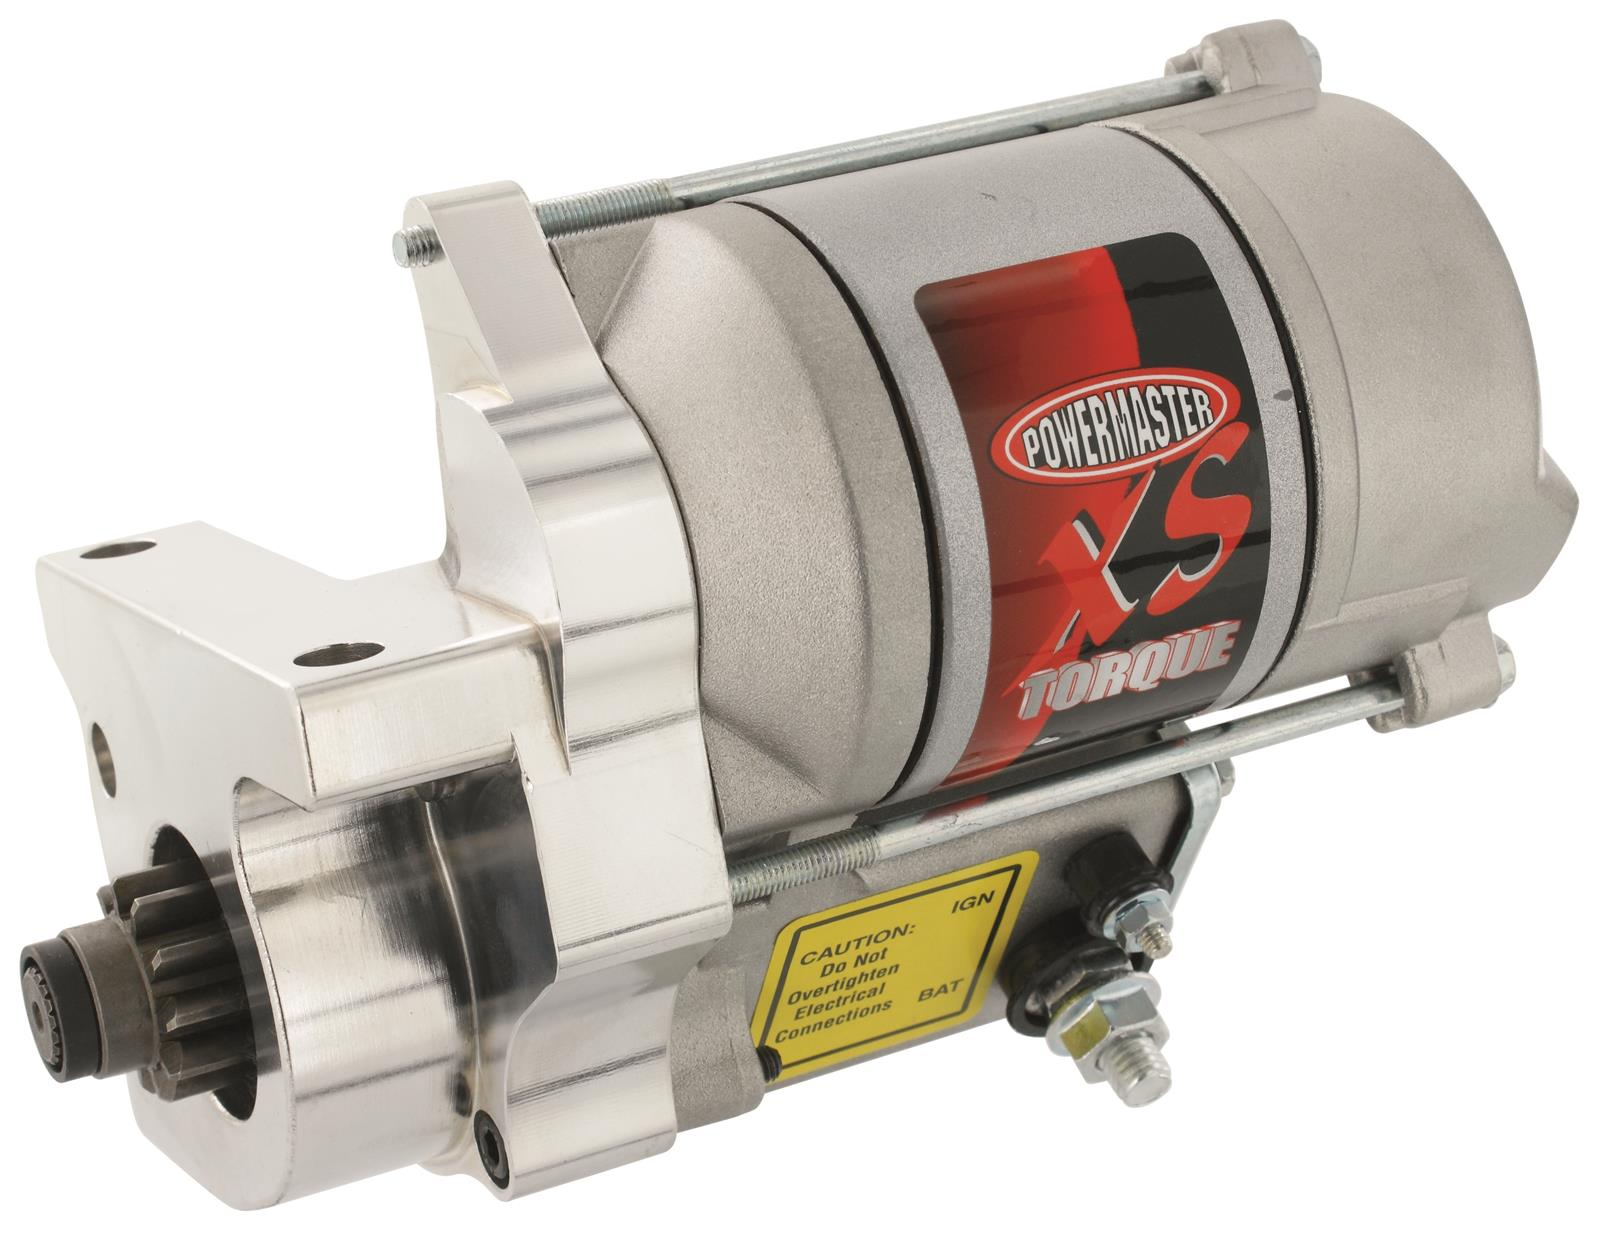 hight resolution of powermaster xs torque starters 9502 free shipping on orders over 99 at summit racing